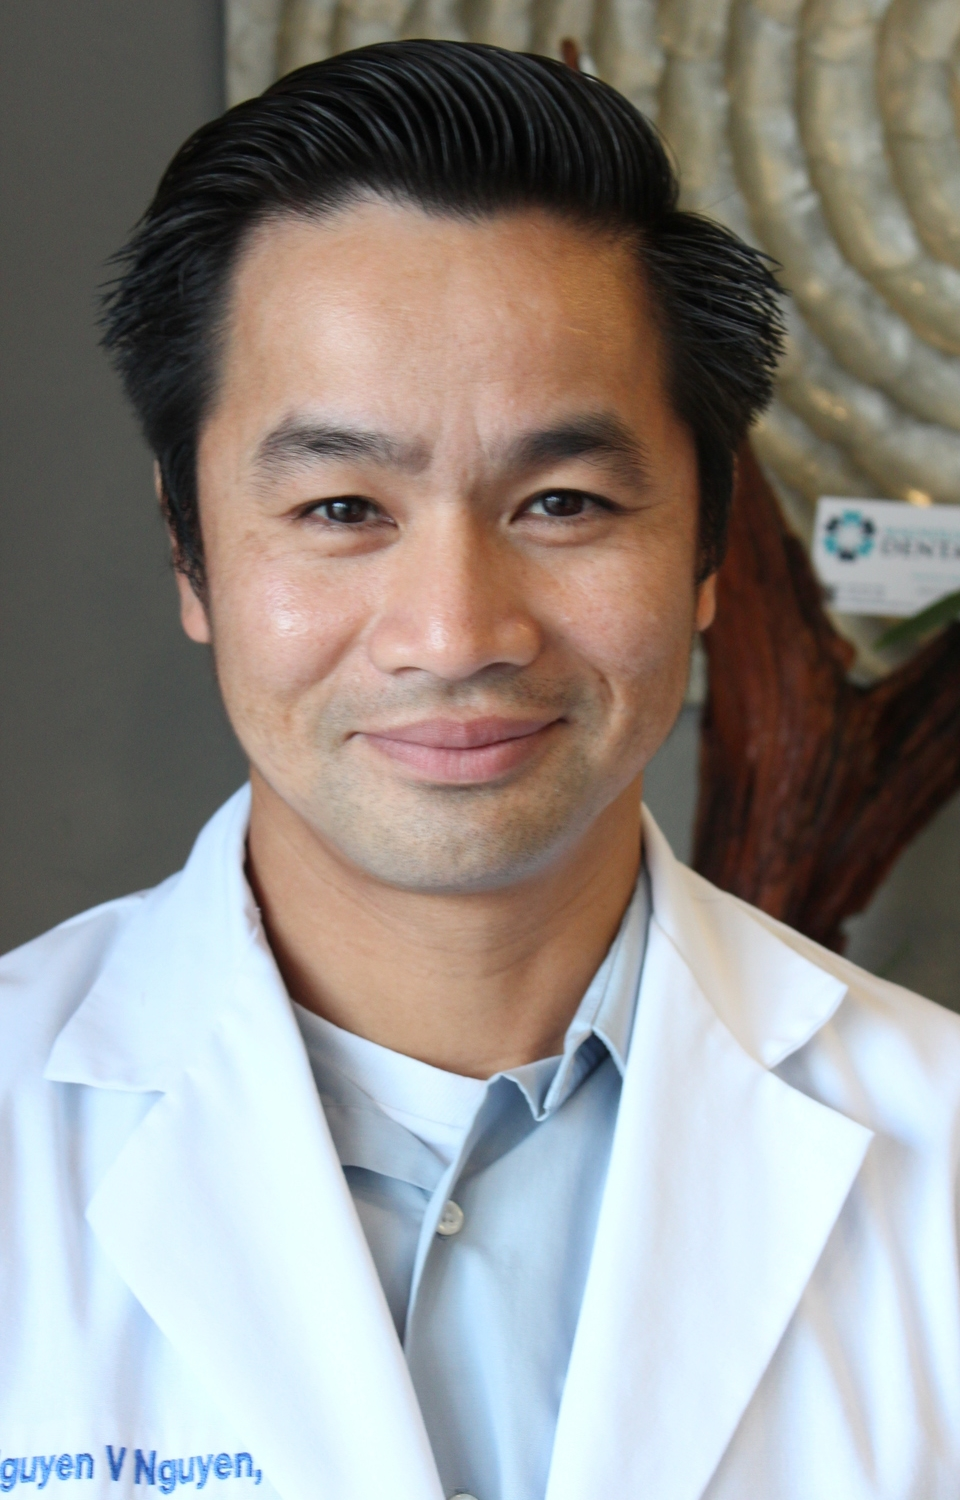 Dr. Nguyen V. Nguyen, DMD DDS, Magnolia Dental, Dentist, Orlando, Waterford Lakes, Avalon Park, Alafaya, Colonial, Cosmetic, Family, Pediatric, Implant, Braces, Orthodontics, Best, Cone beam CT, Emergency, Dentures, Veneers, Zoom Whitening